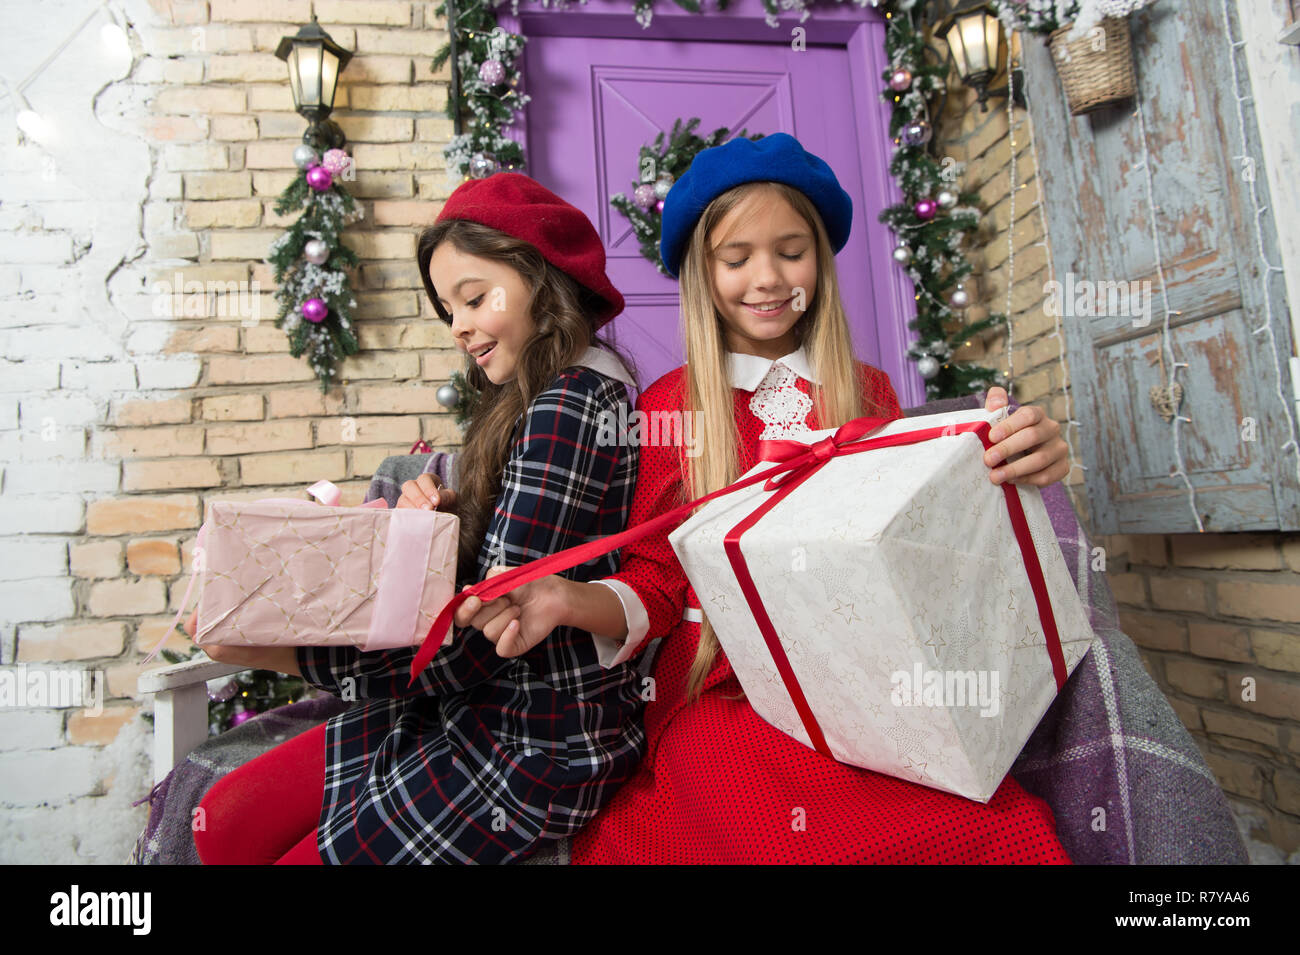 Unwrap Gift Stock Photos   Unwrap Gift Stock Images - Alamy 2b710ee0d